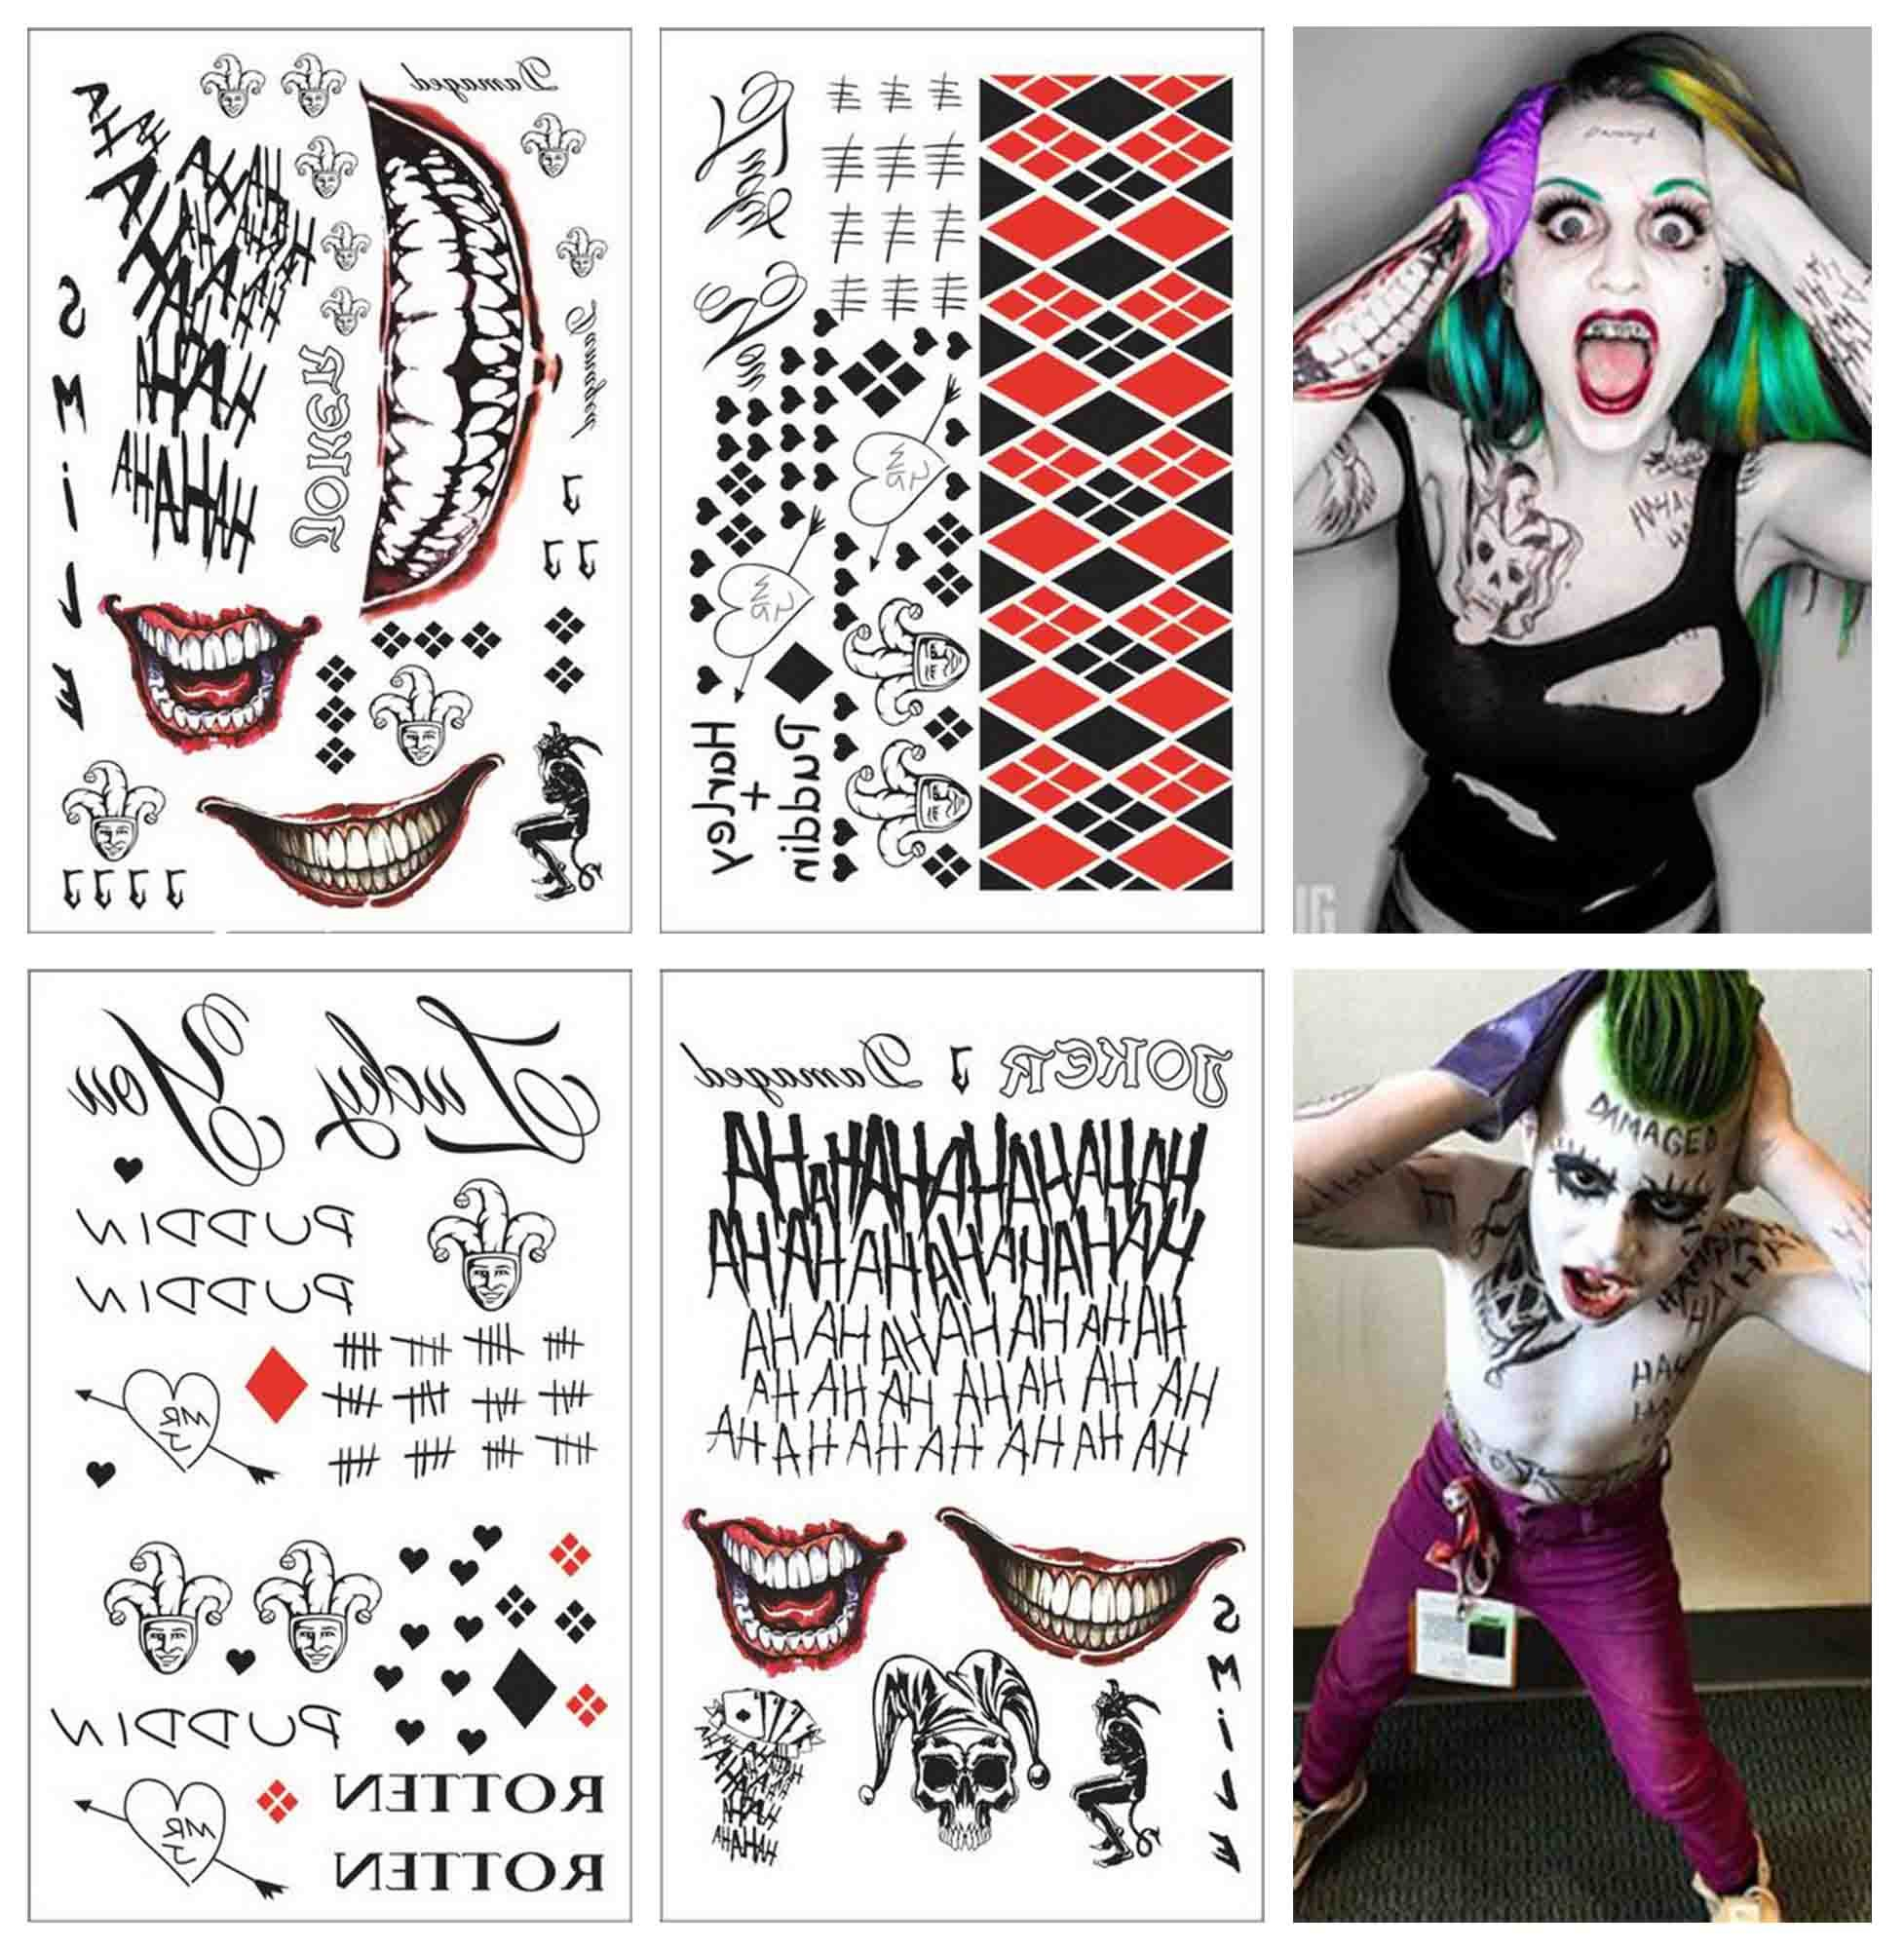 COKOHAPPY 4 Large Sheets SS Temporary Tattoo HQ & The Joker Sticker 80+ Tats Costume/Cosplay Party Accessories